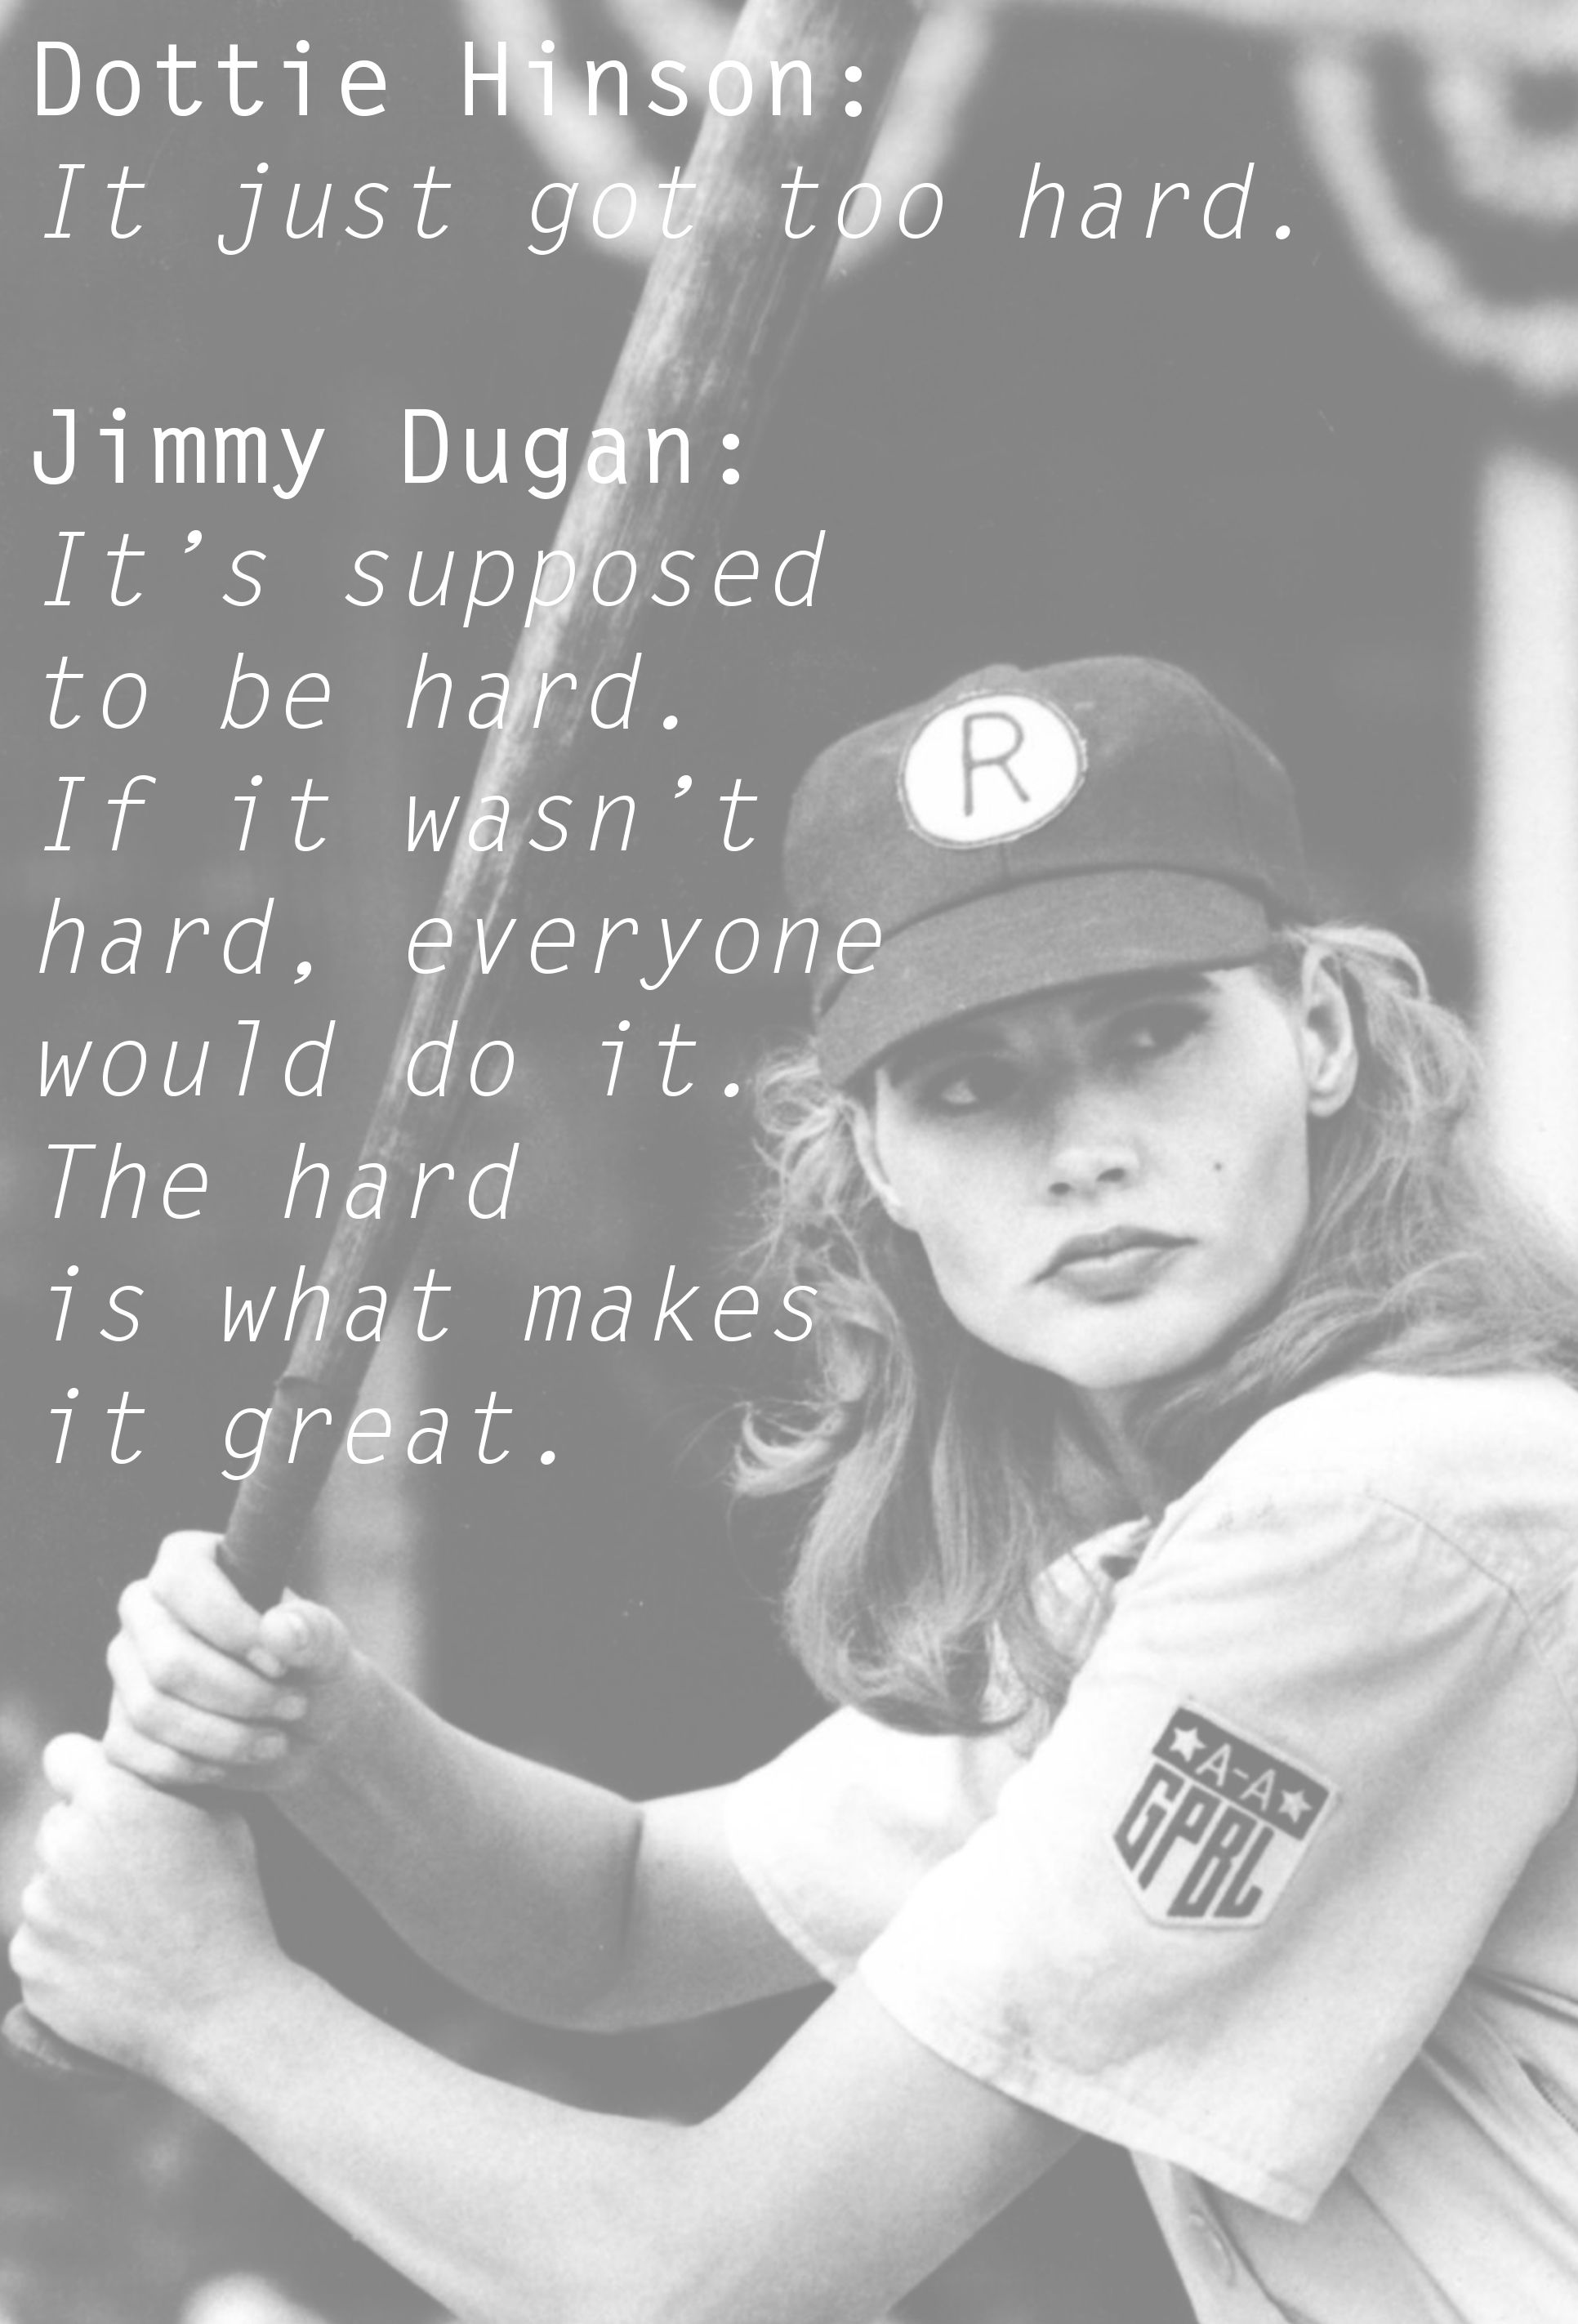 Top Ten Greatest Sports Movie Quotes